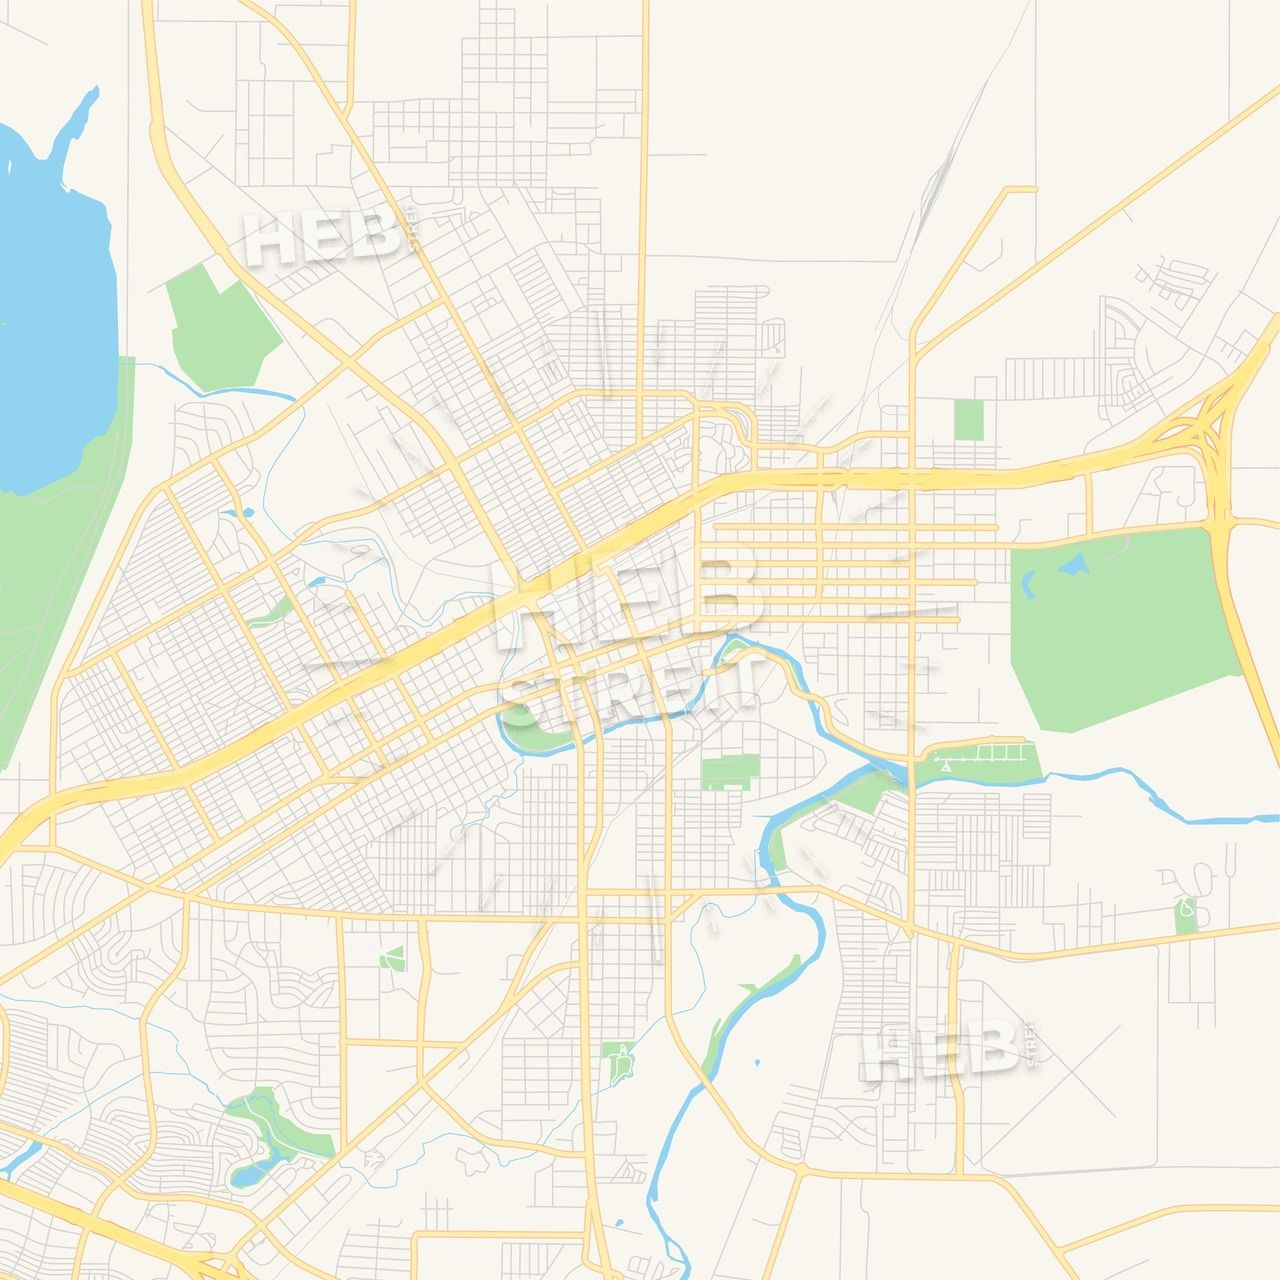 Empty vector map of San Angelo, Texas, USA | Maps Vector ... on snyder texas map, st. hedwig texas map, denton texas map, eagle pass texas map, stephenville texas map, new braunsfels texas map, fort smith texas map, wichita falls texas map, marble falls texas map, ballinger texas map, abilene texas map, laredo texas map, pasco texas map, lake texana texas map, fort concho texas map, galveston texas map, houston texas map, nw san antonio texas map, texas county map, deming texas map,